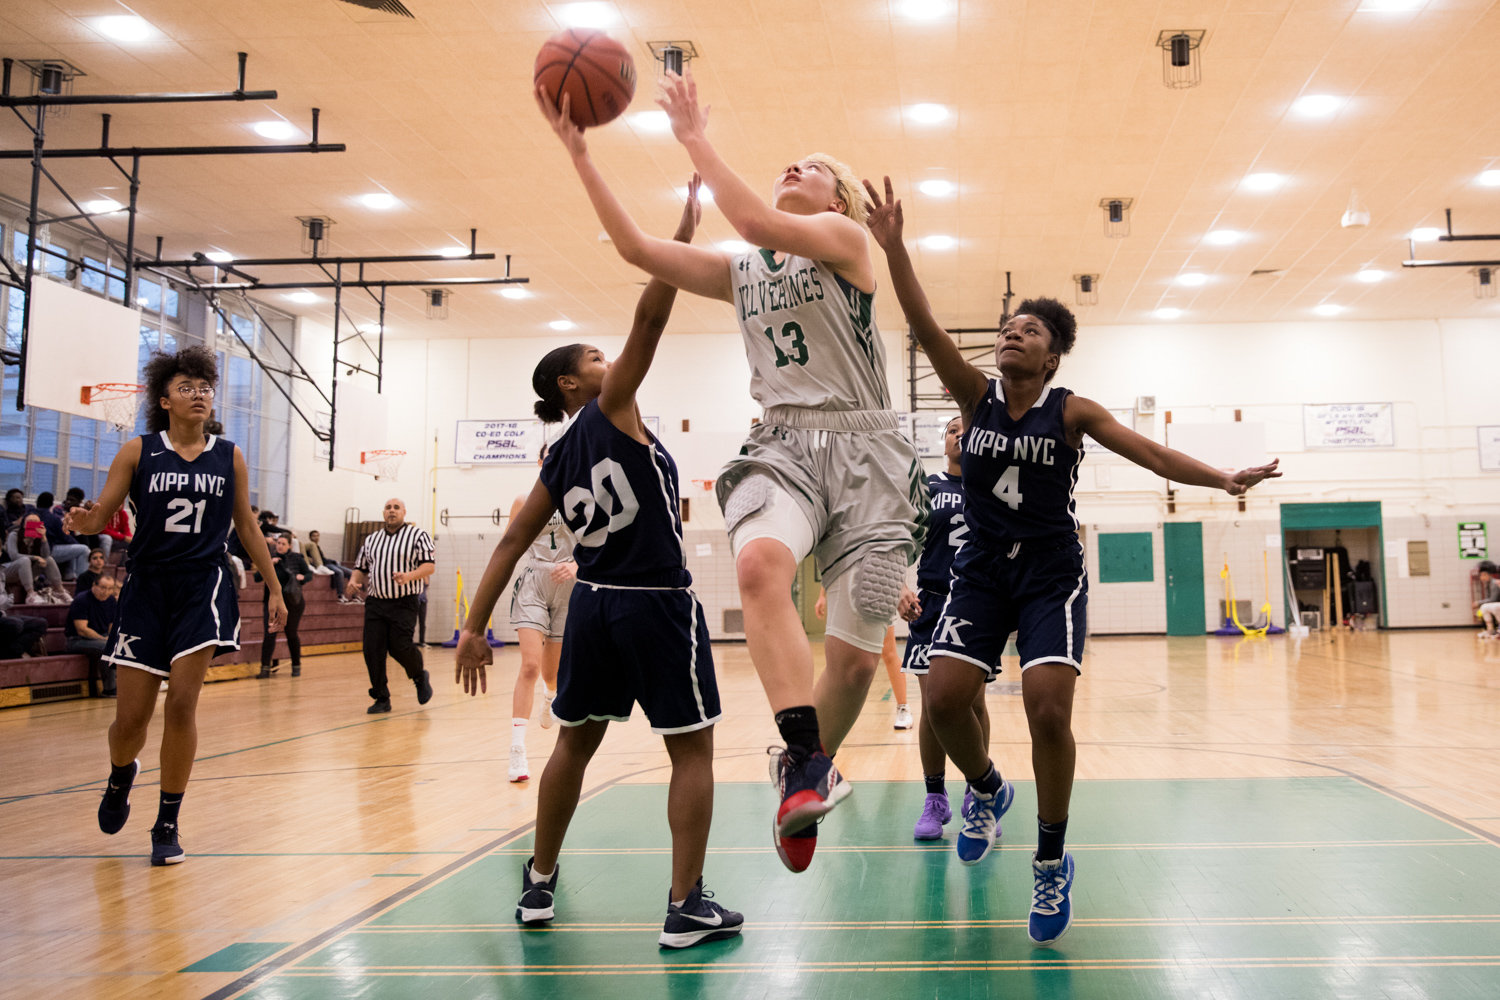 Bronx Science's Sarang West scored 20 of the Wolverines' 39 points in her team's victory over Evander.